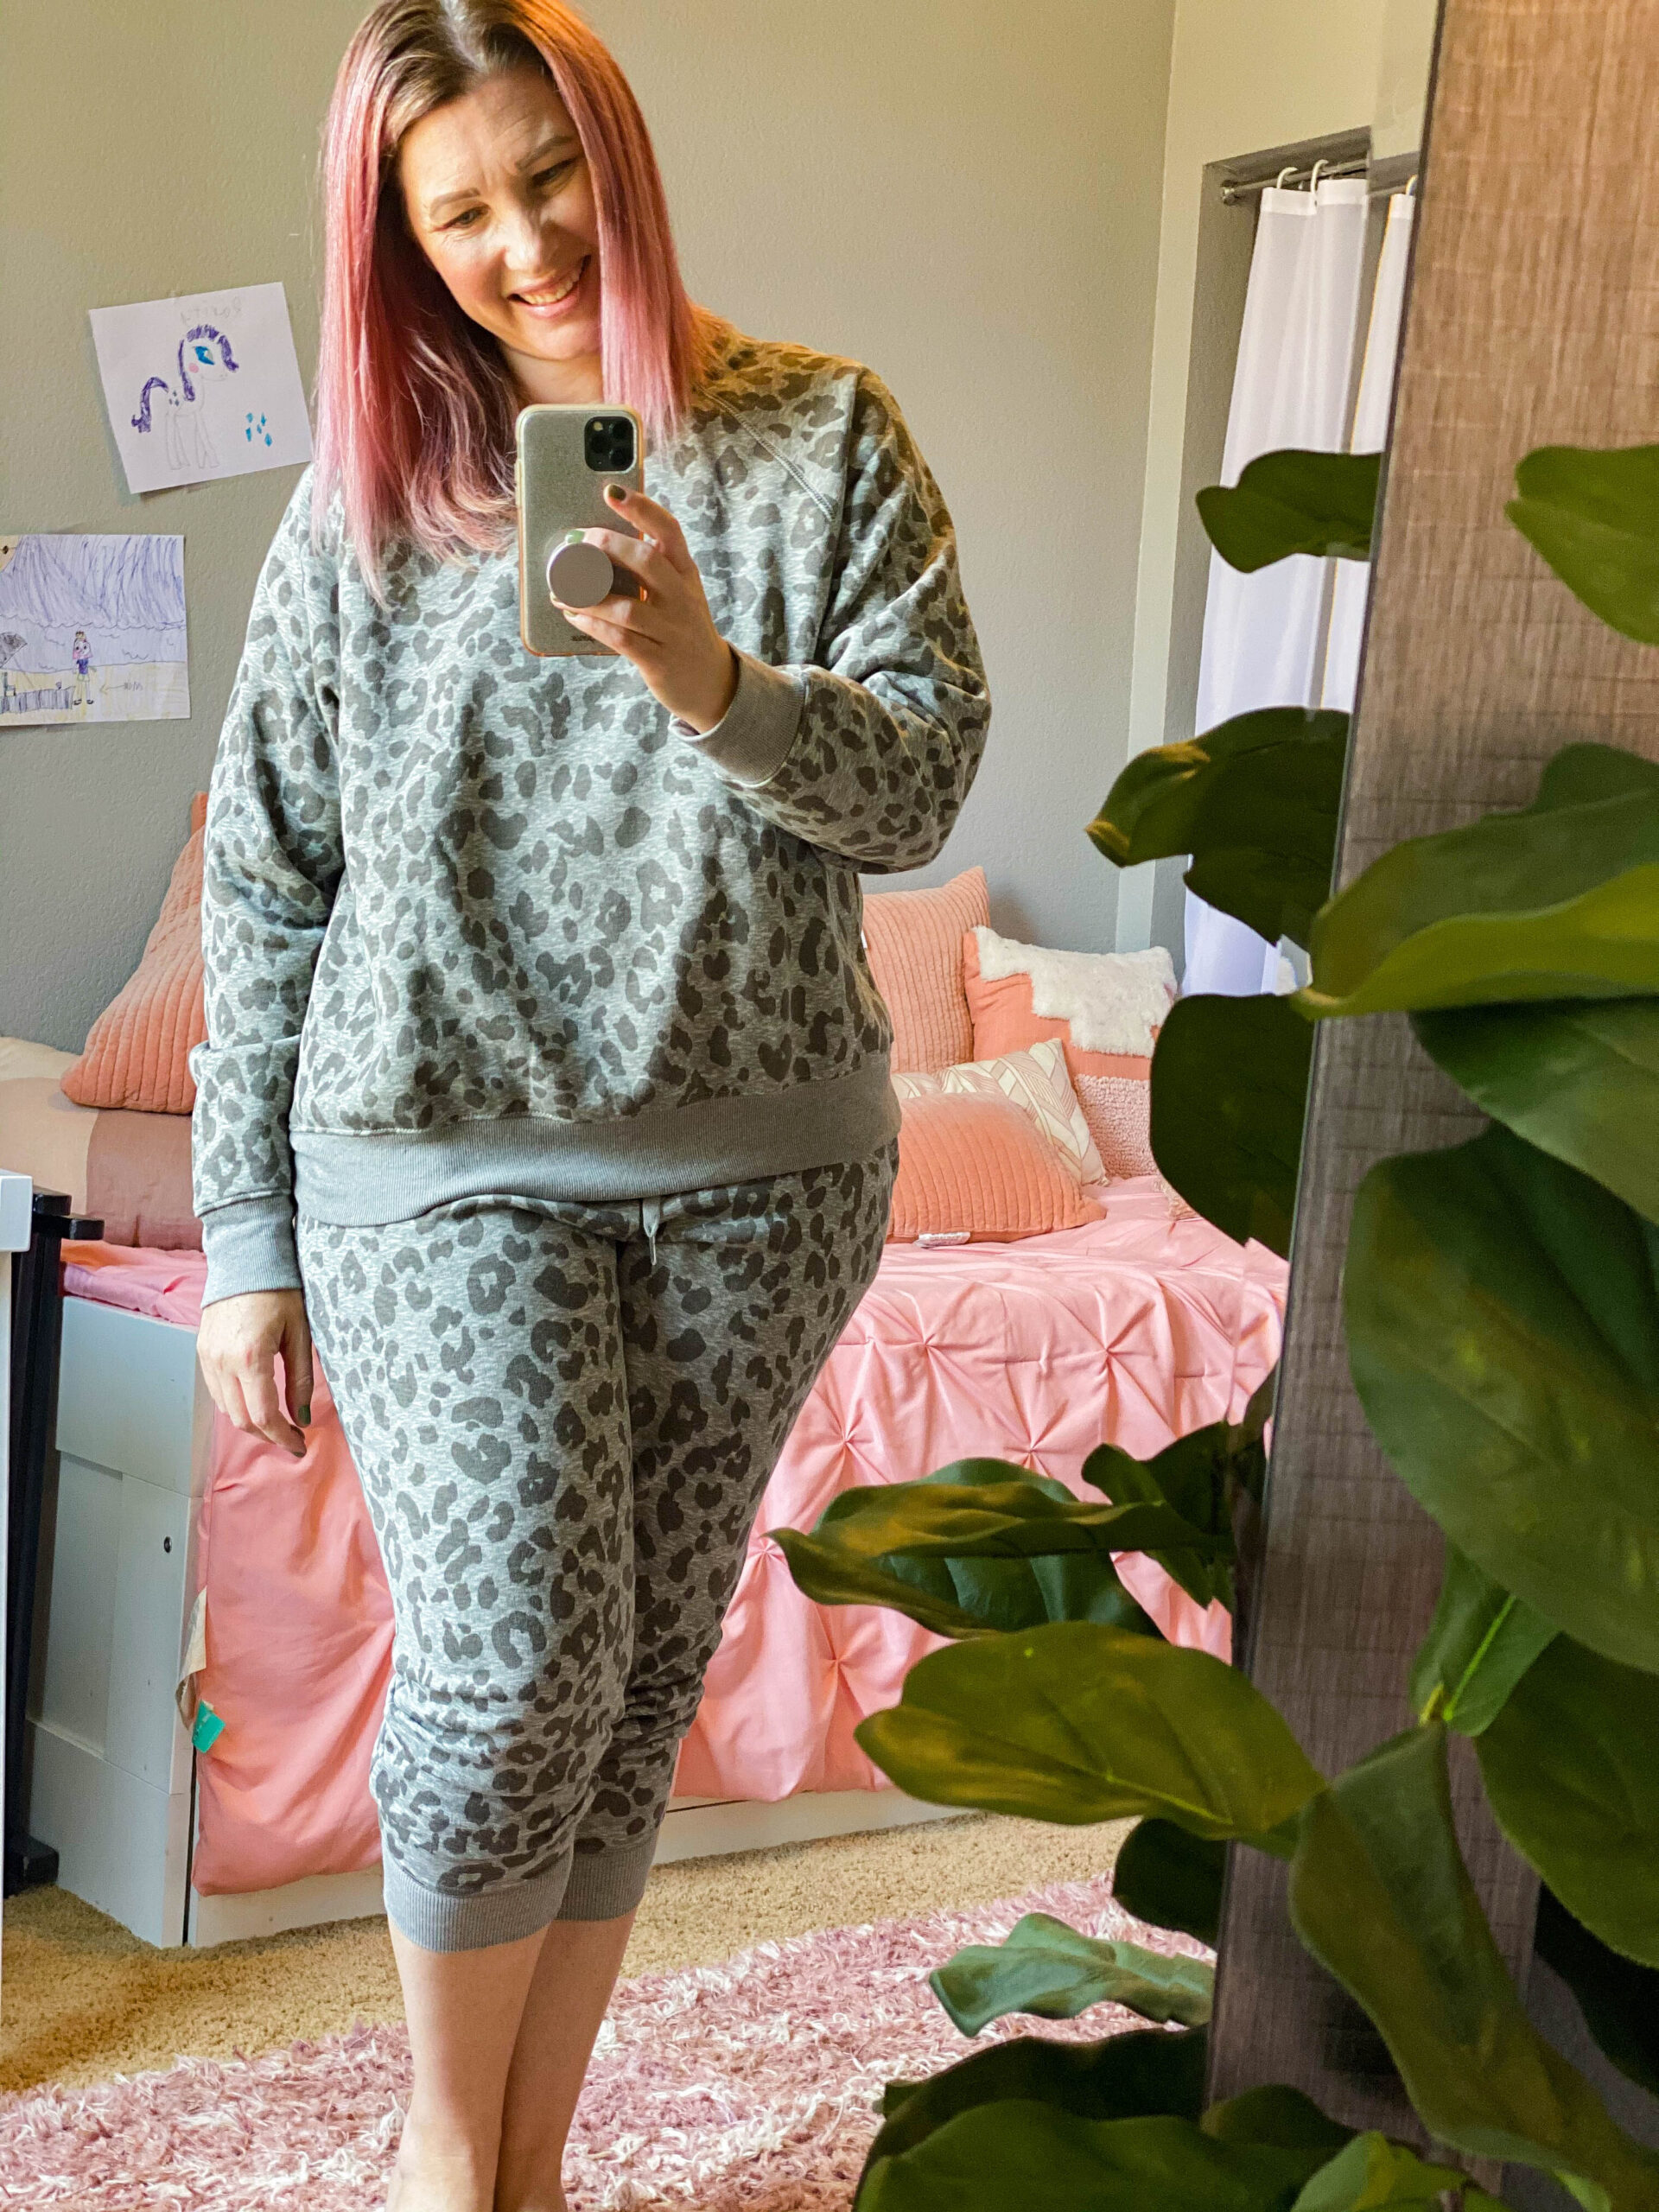 Who doesn't love a leopard sweatsuit? This is casual fall outfit perfection!